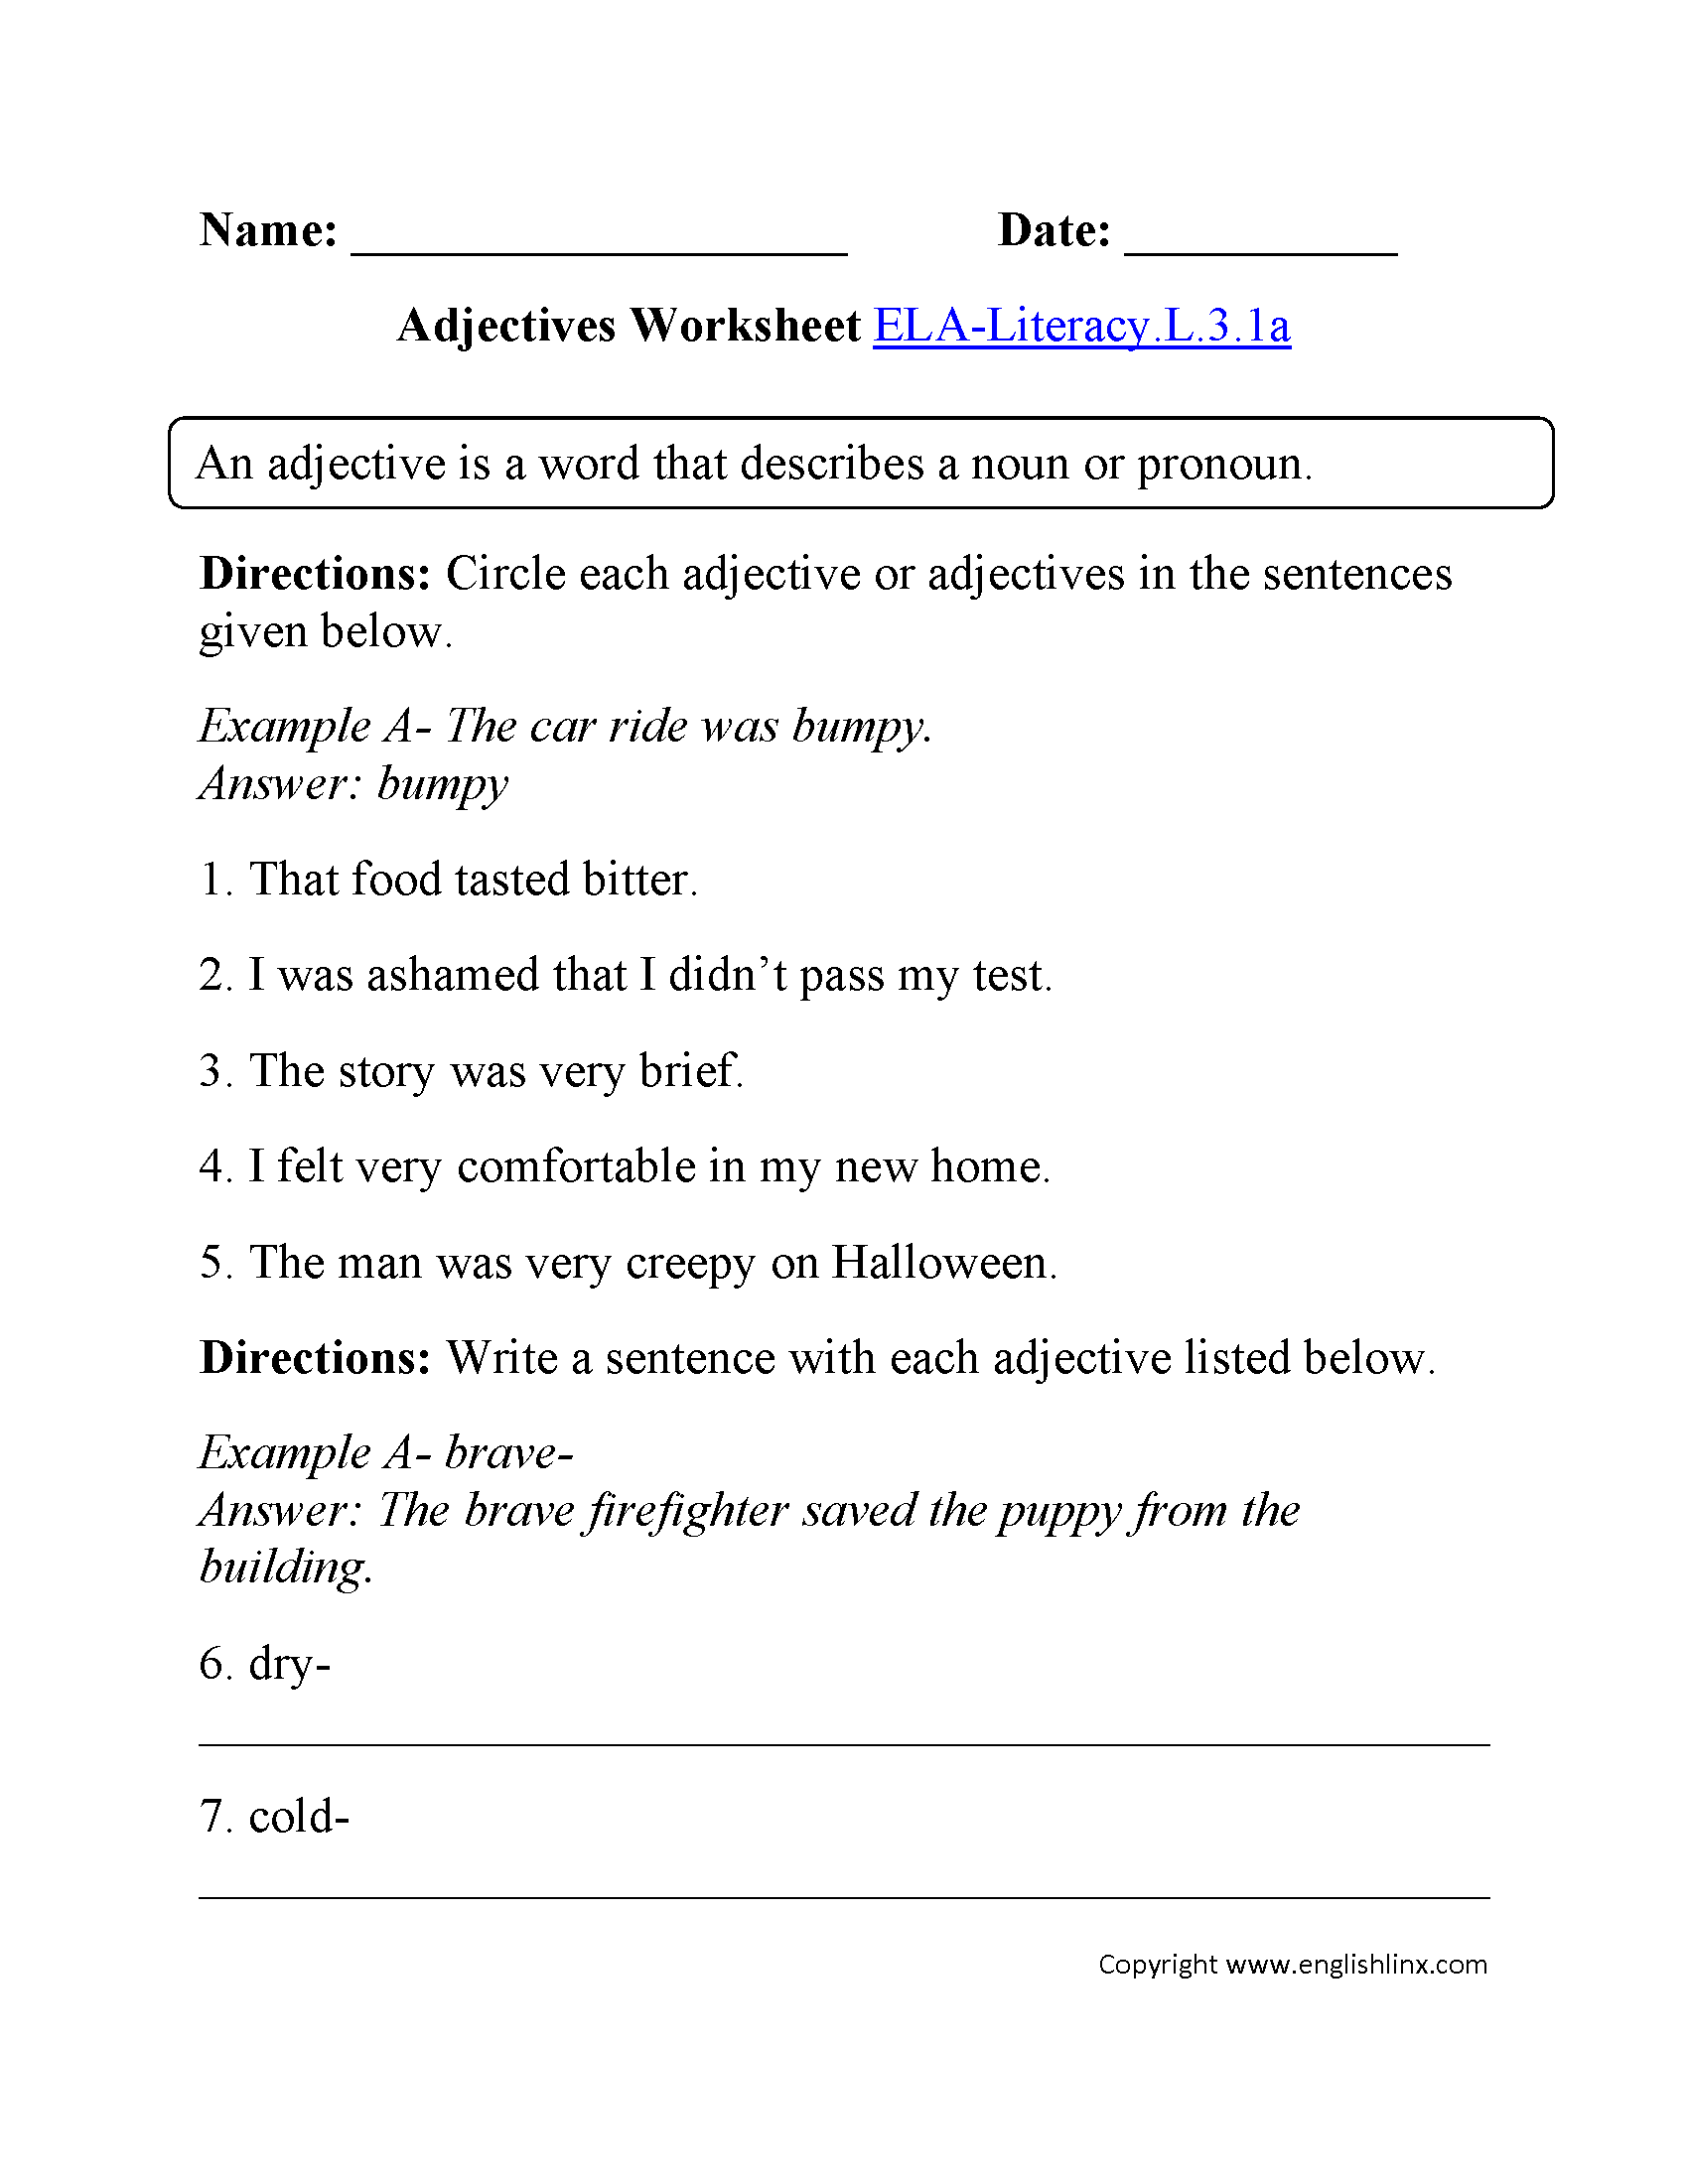 Worksheet Adjective Worksheets Grade 2 3rd grade common core language worksheets adjectives worksheet 2 ela literacy l 3 1a worksheet